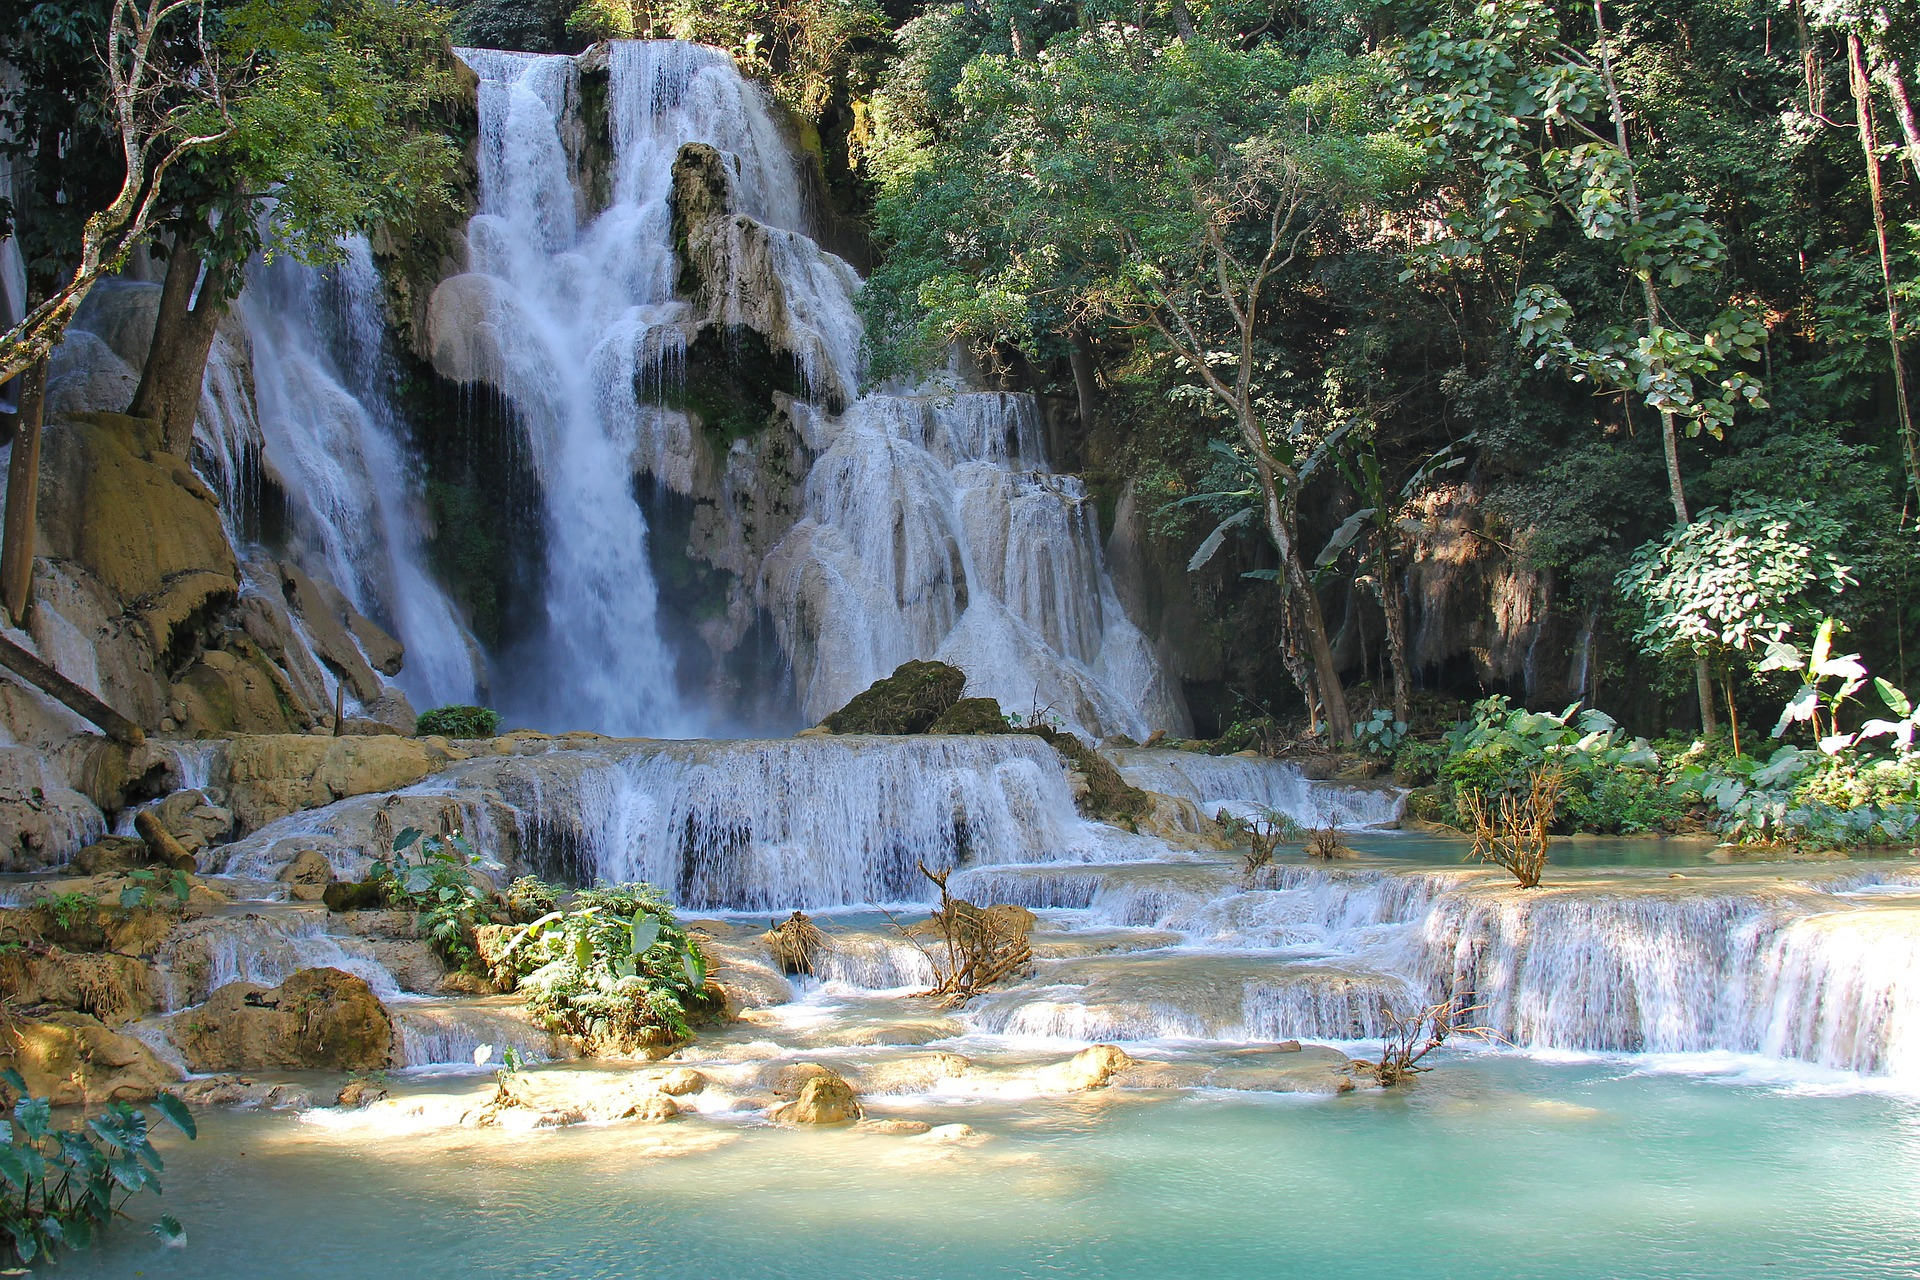 The Kuang Si Falls are known for their beautiful blue water, half of the year